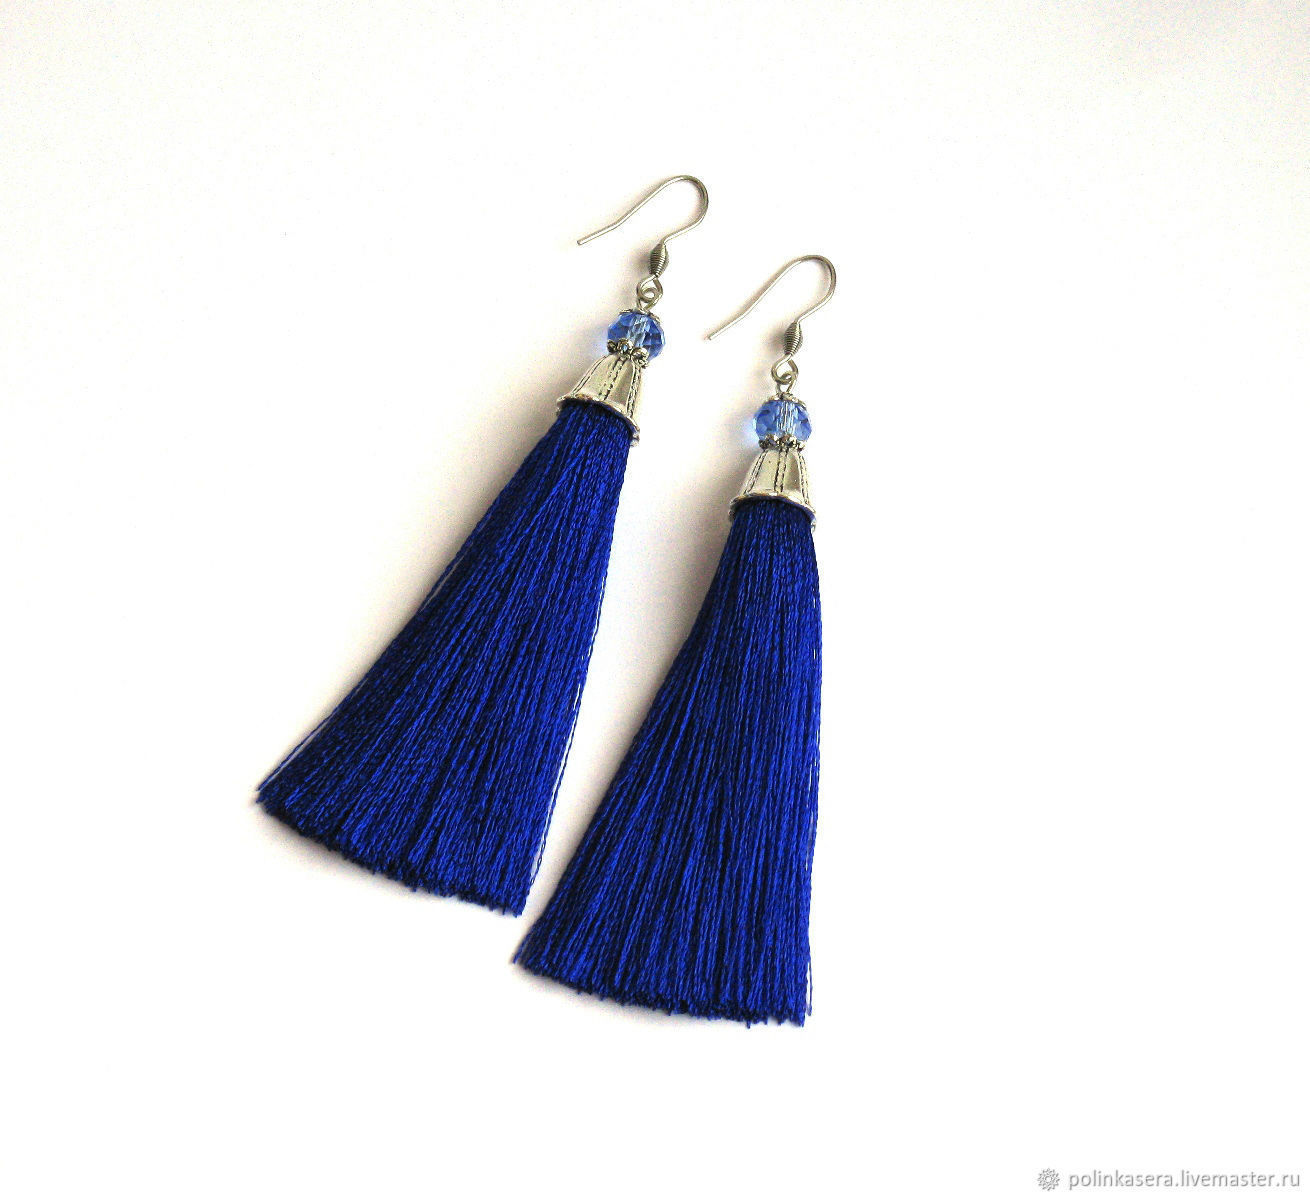 detail com drop designs fashion nzbr on thread silk wholesales product earring buy alibaba earrings